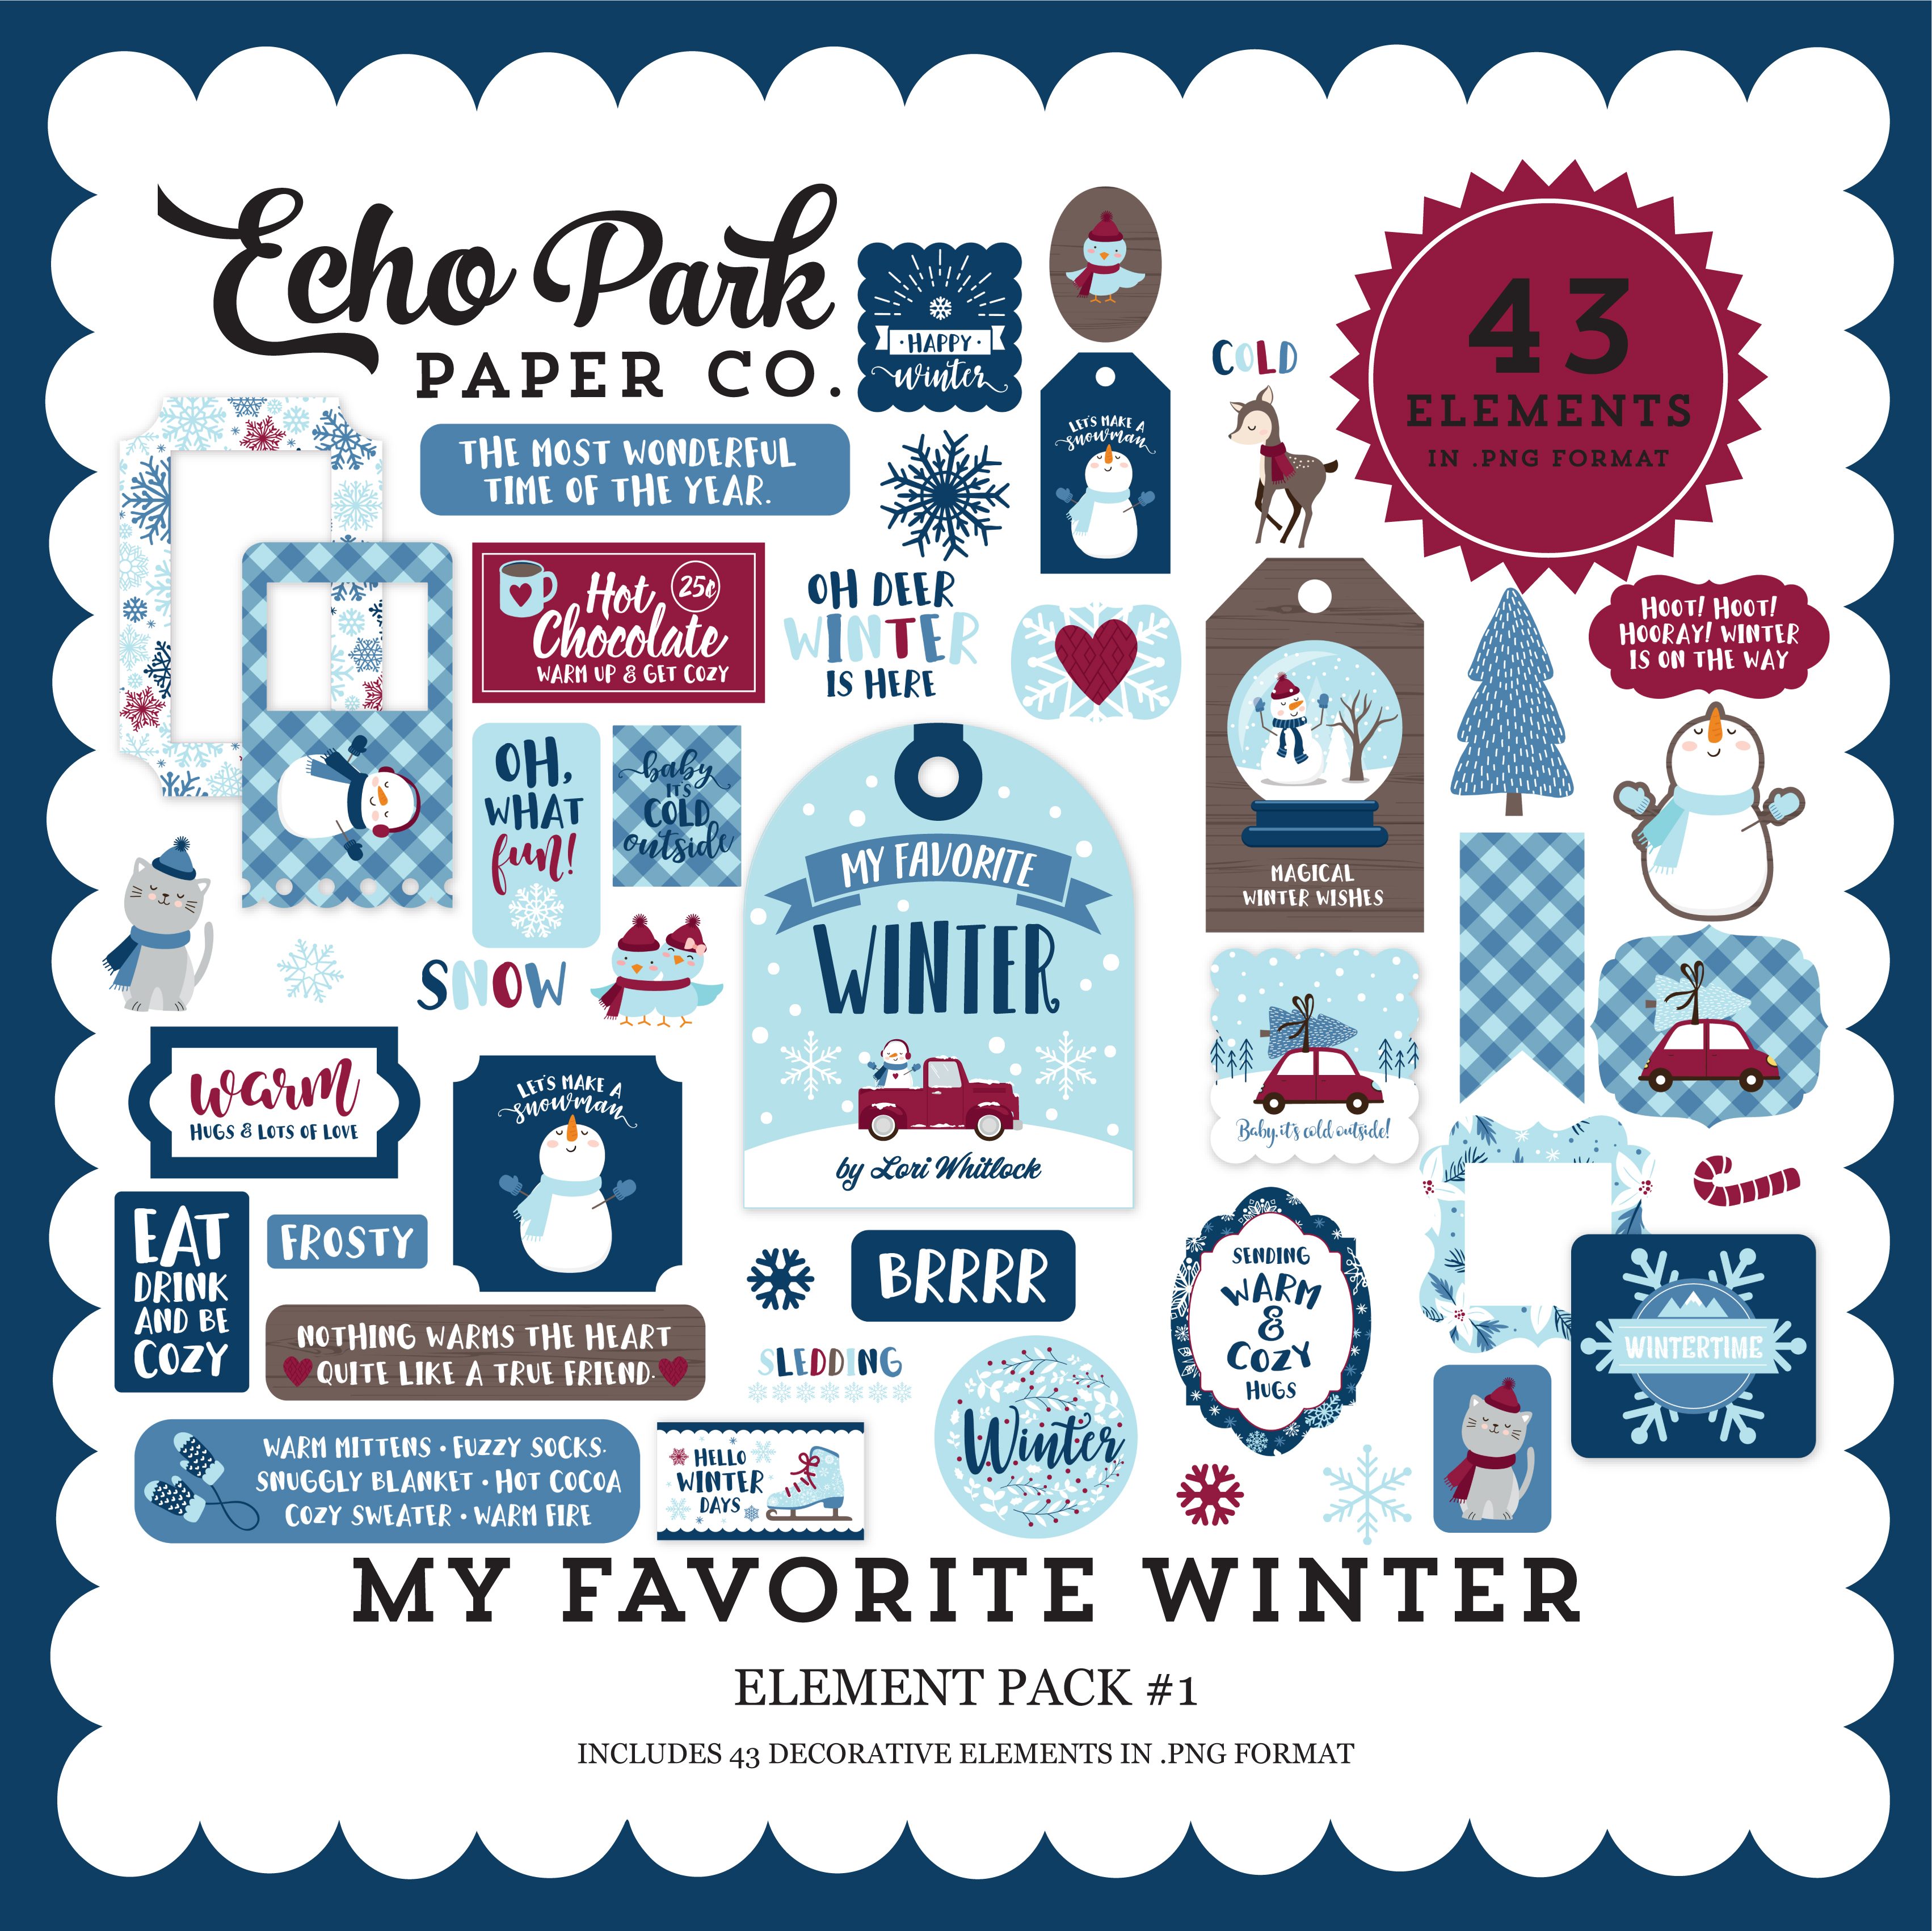 My Favorite Winter Element Pack #1